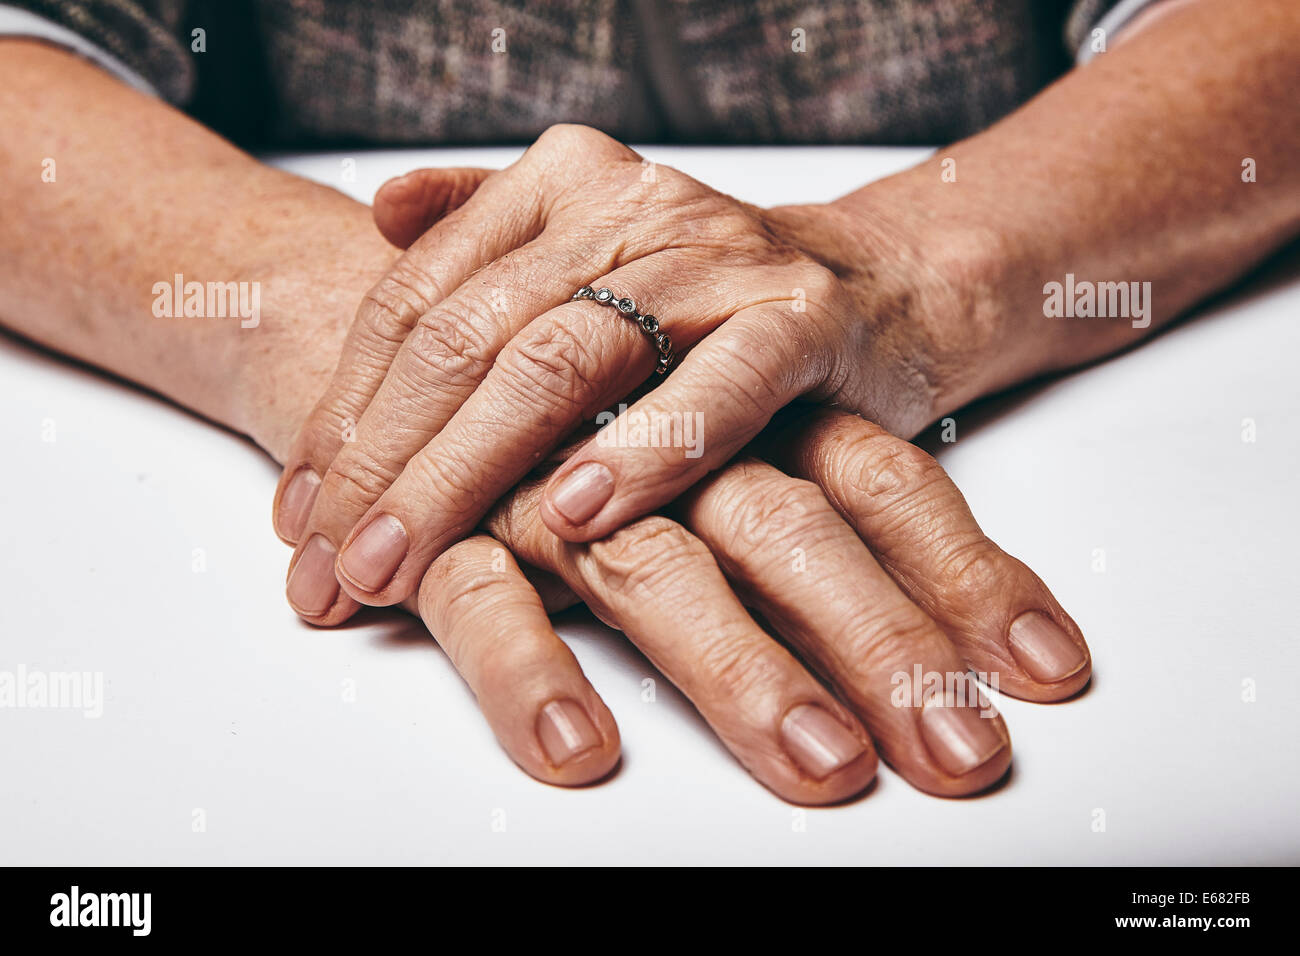 Macro of an old lady sitting with her hands clasped on a table. Elderly woman's hands with a ring resting on - Stock Image